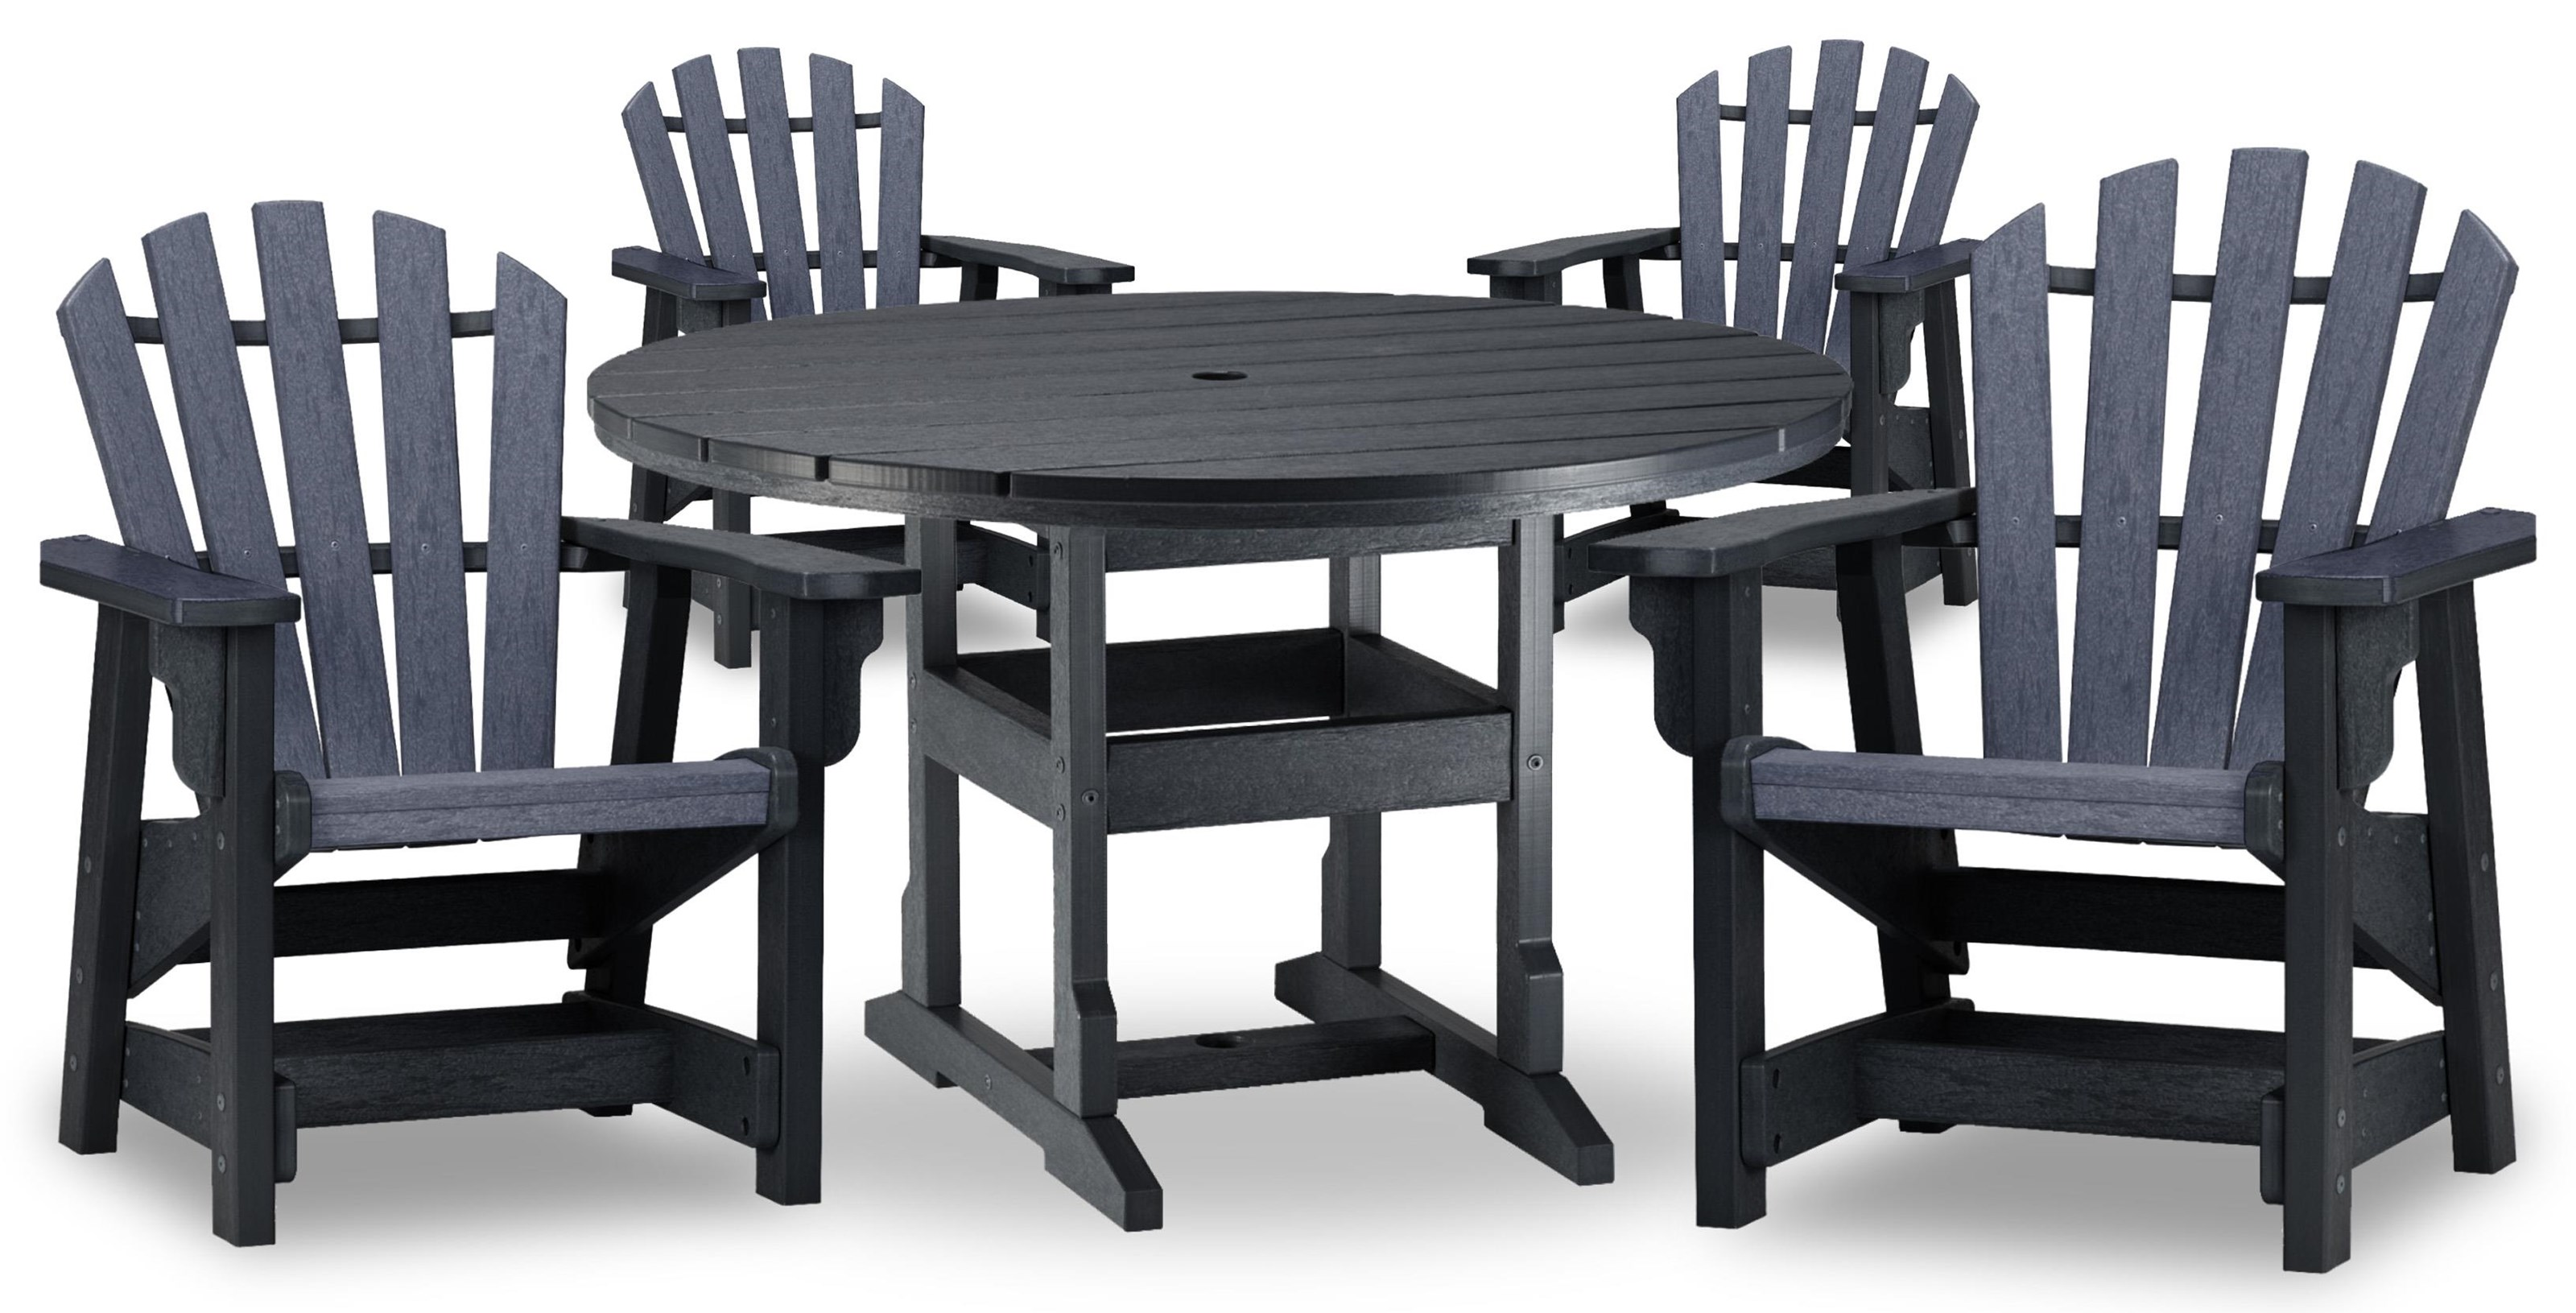 48 inch Table and 4 Chairs